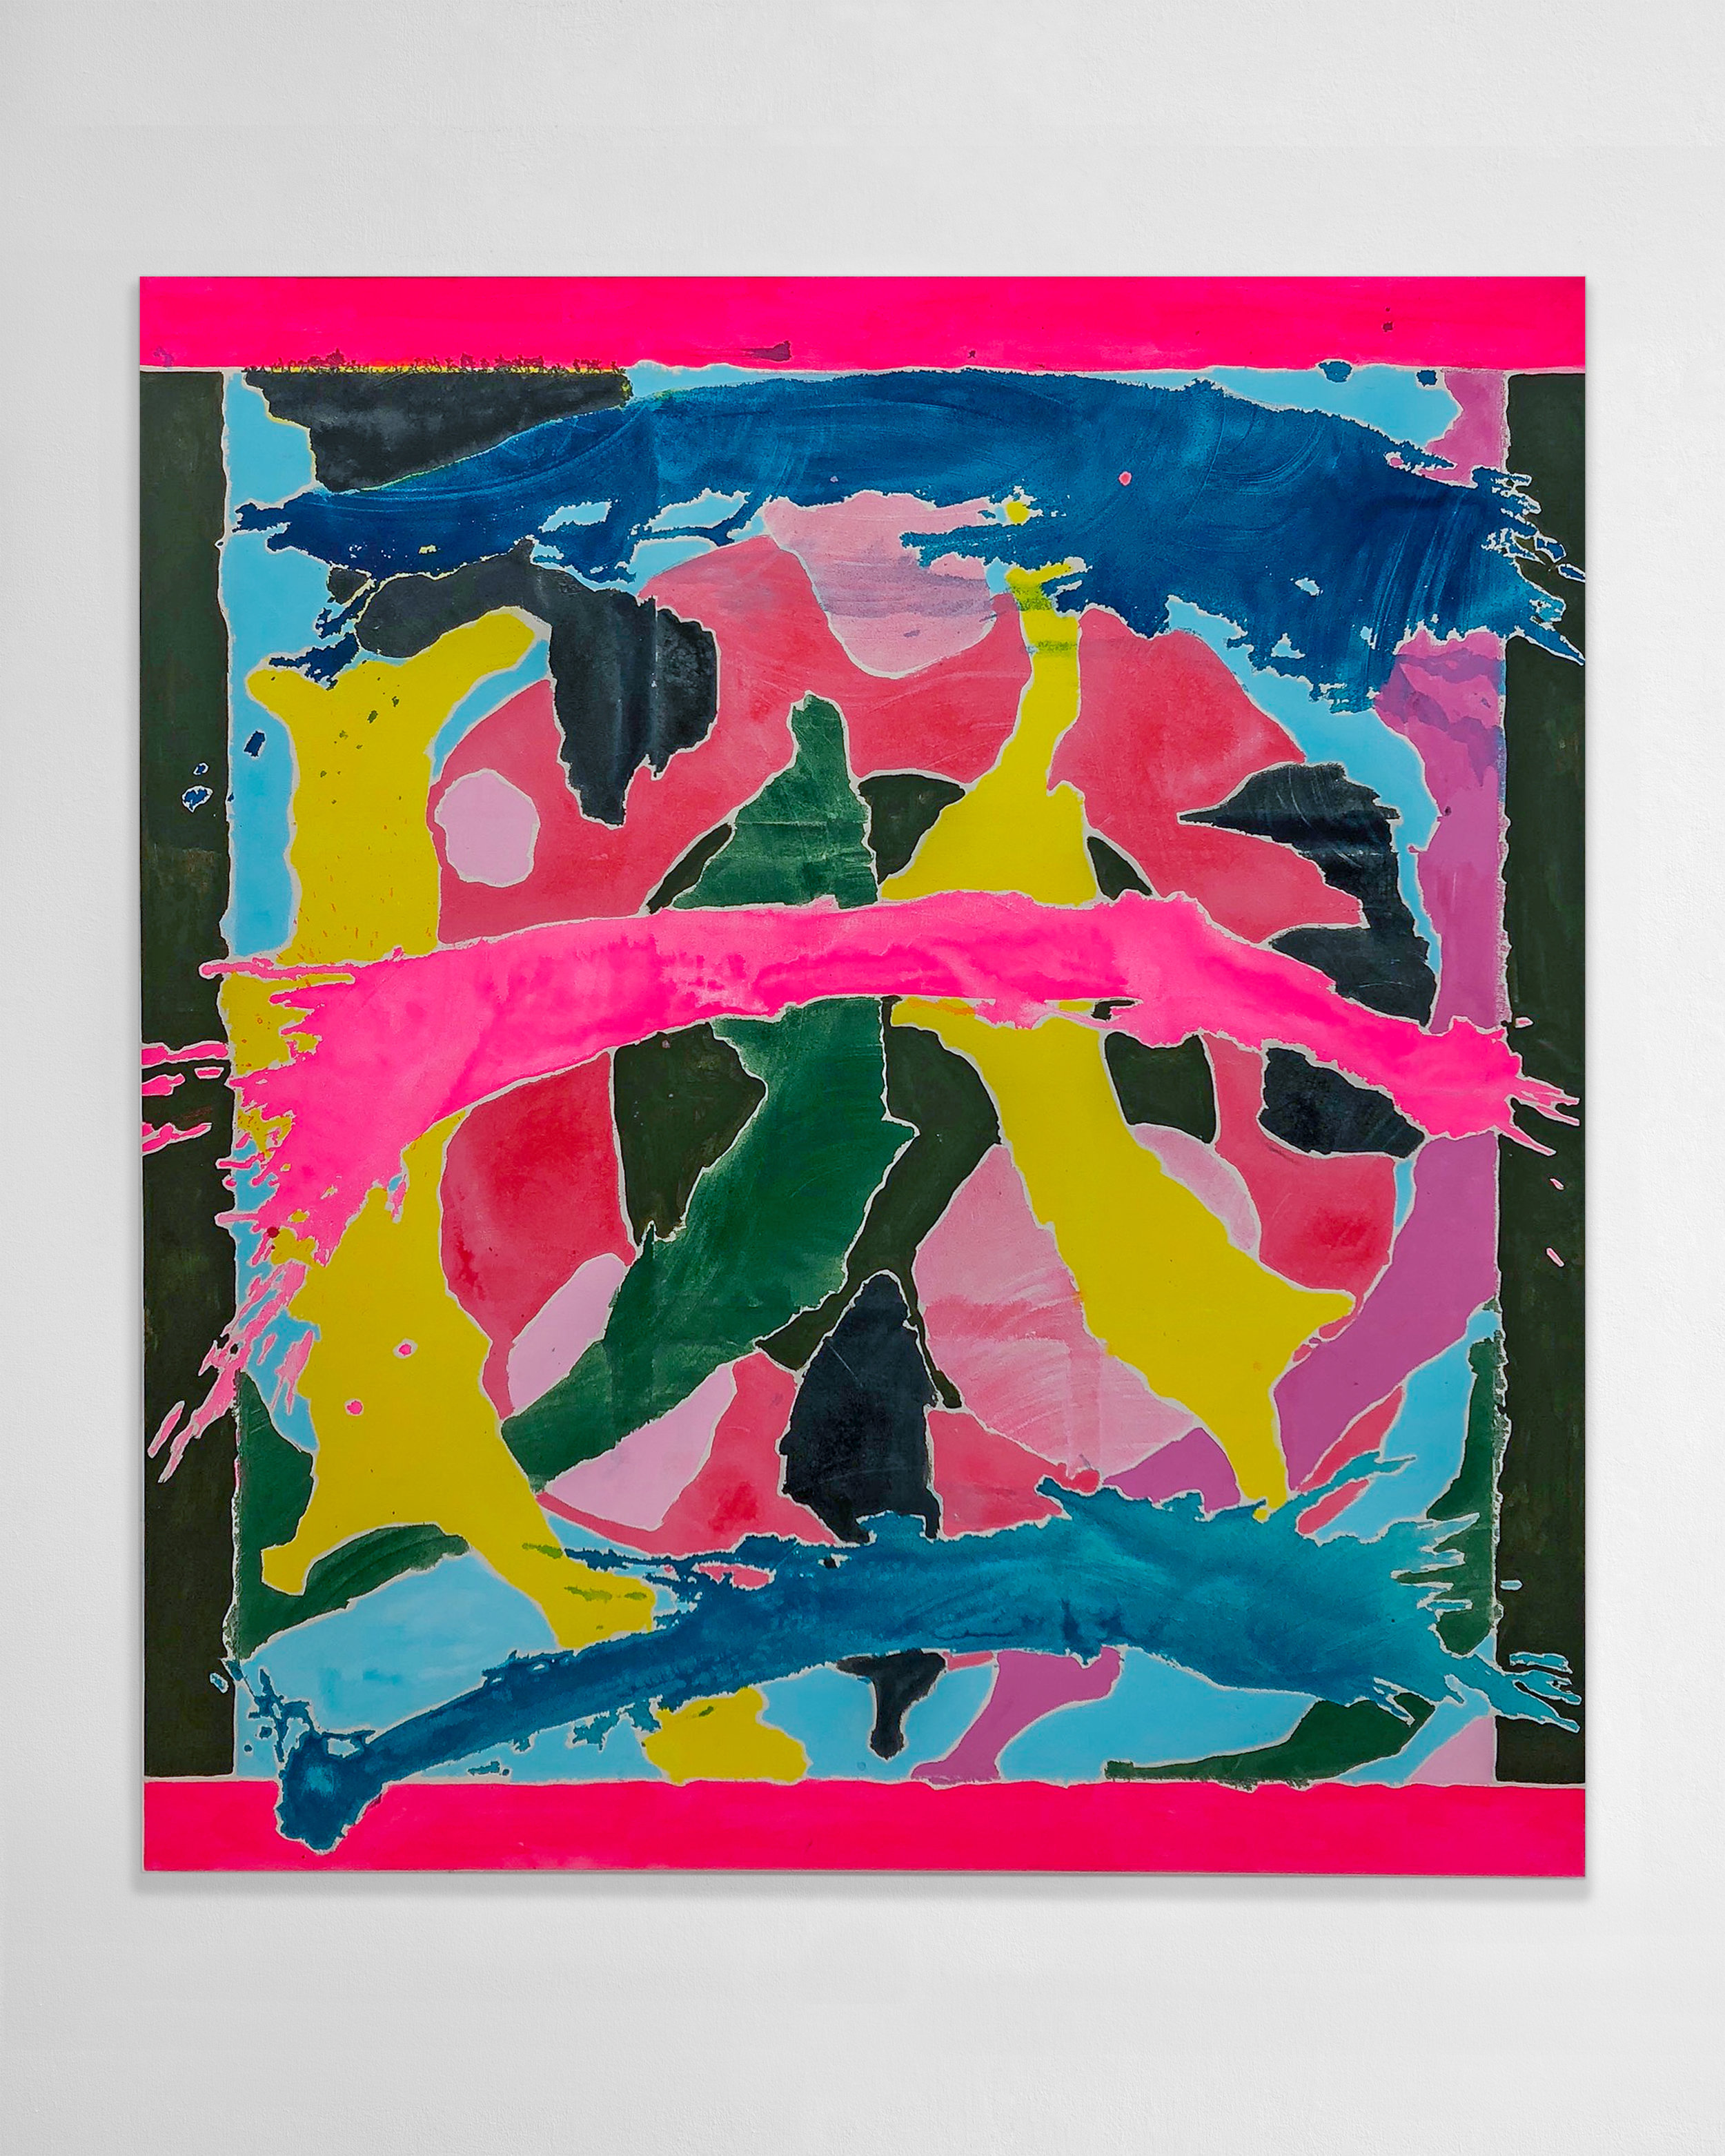 Russell Tyler  - Kind of Orbit, 2019 Acrylic on canvas 64h x 58w inches